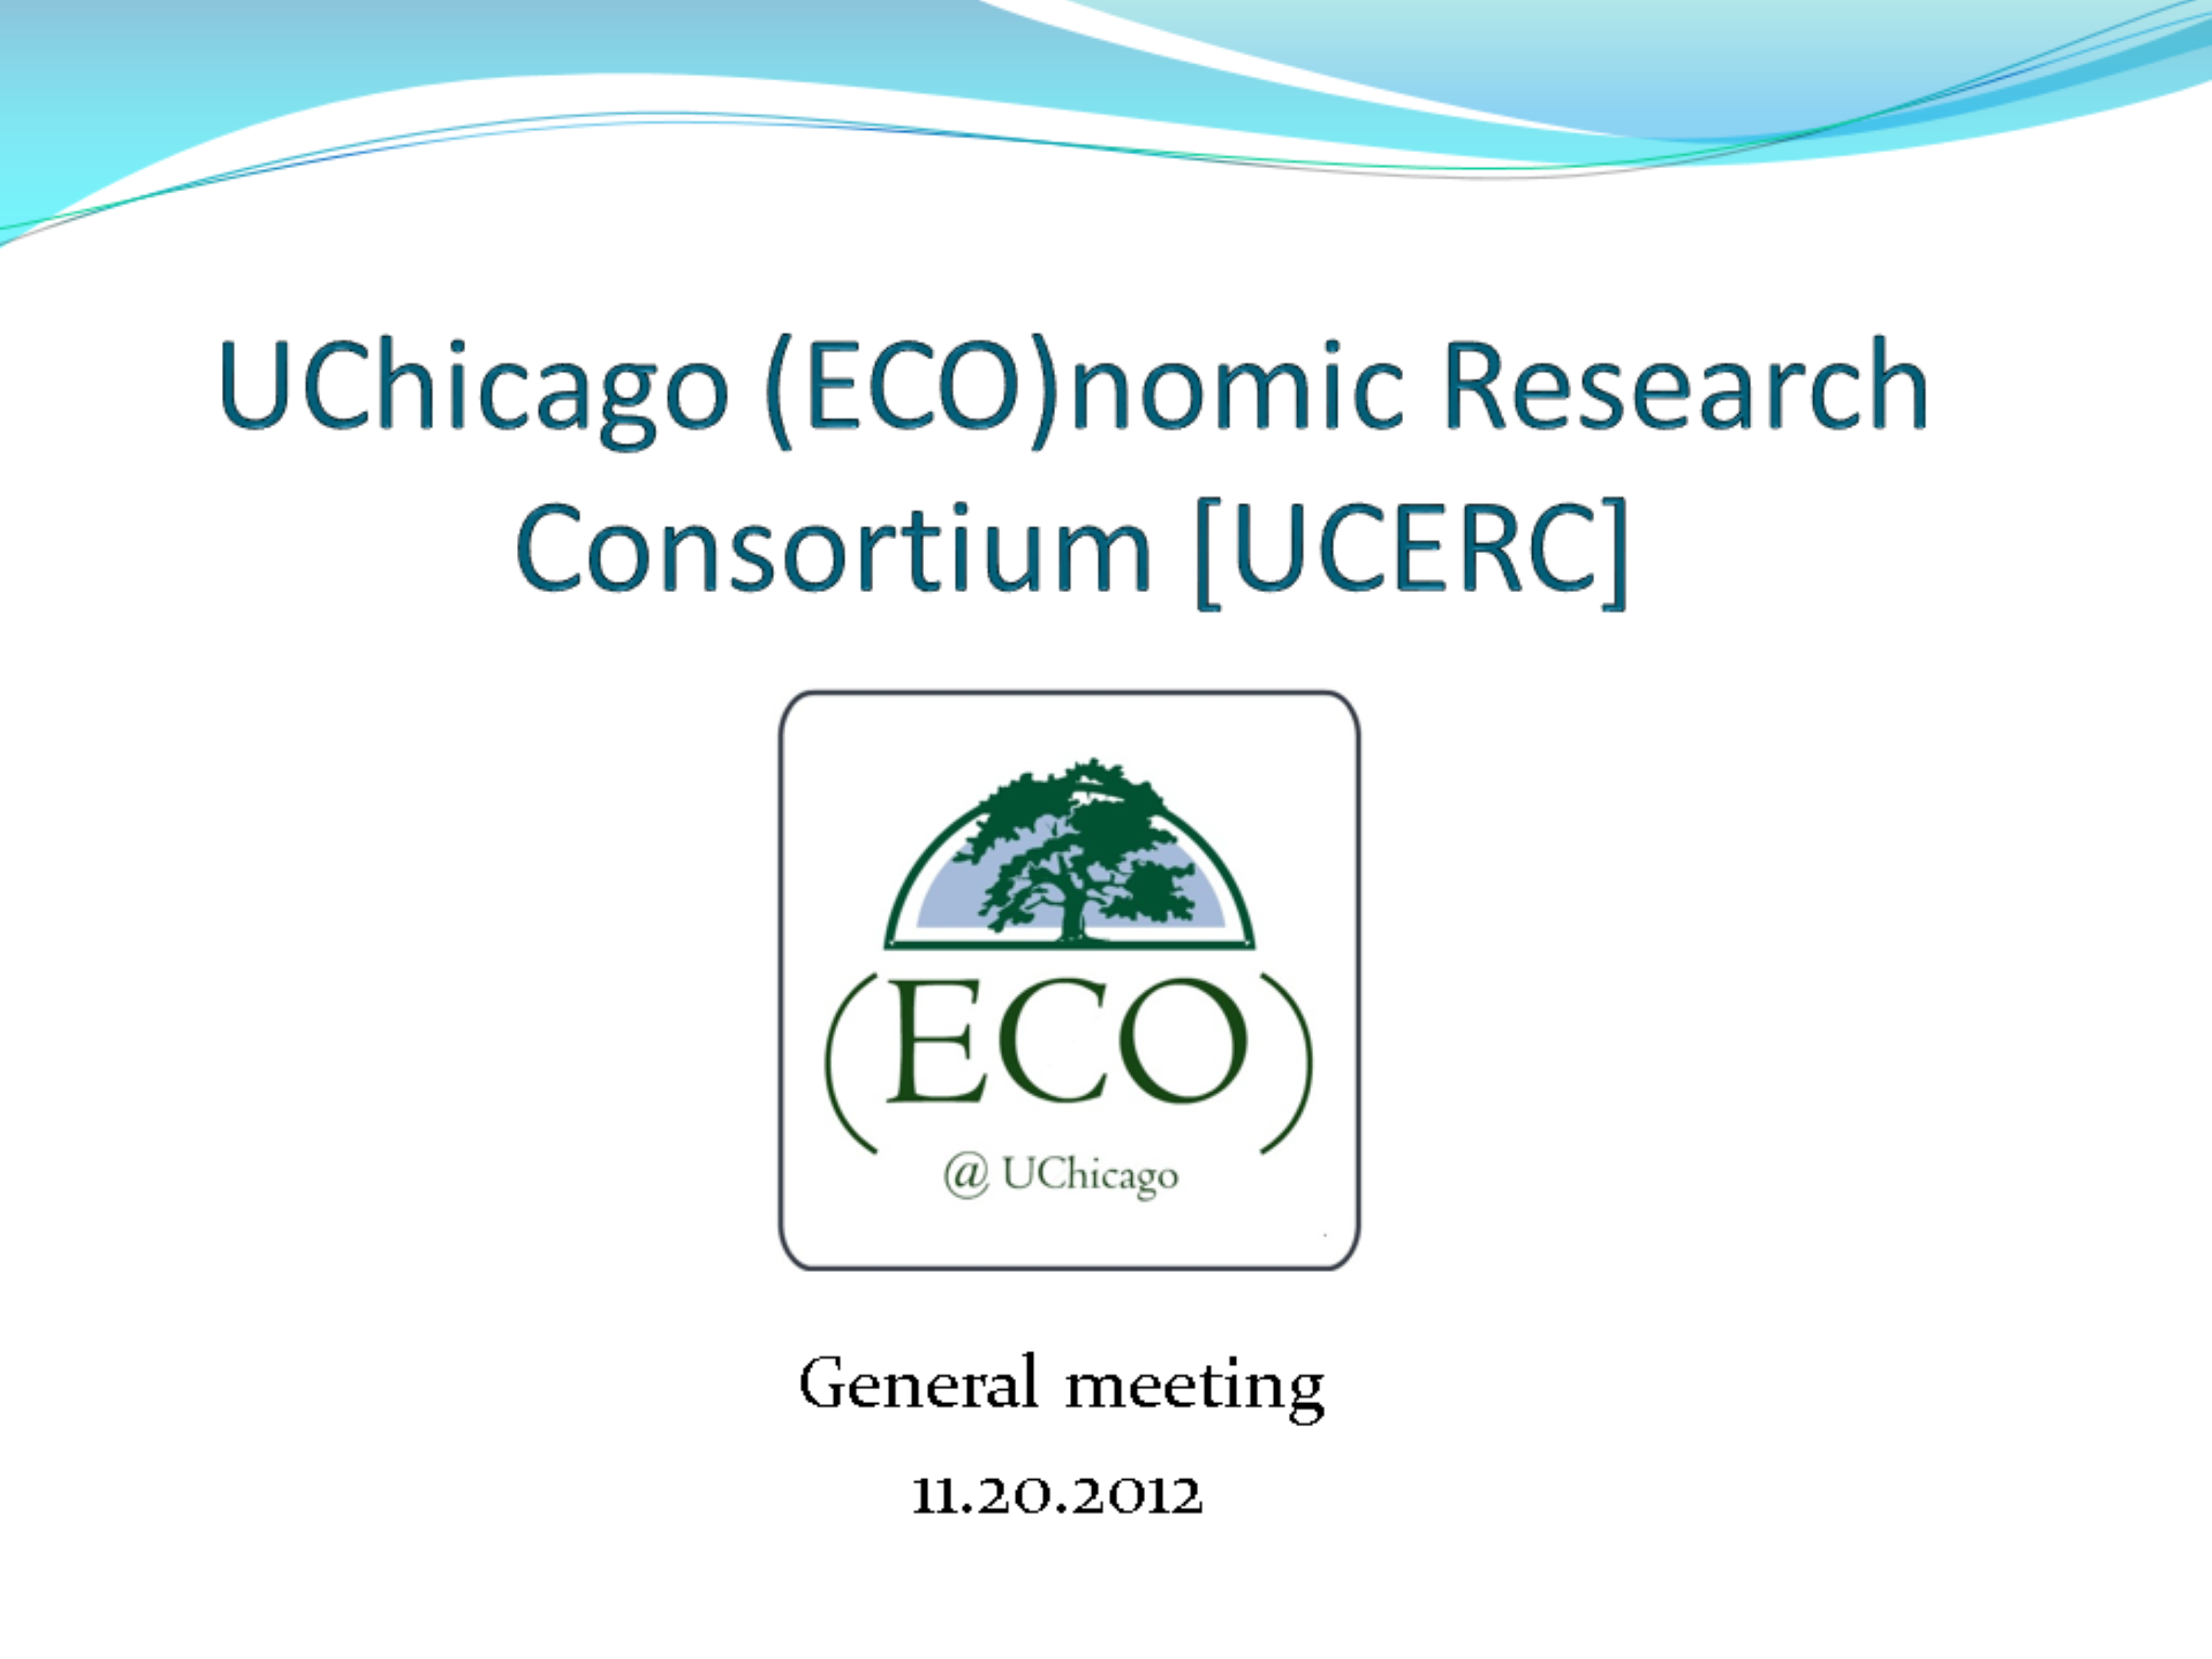 UCERC_meeting